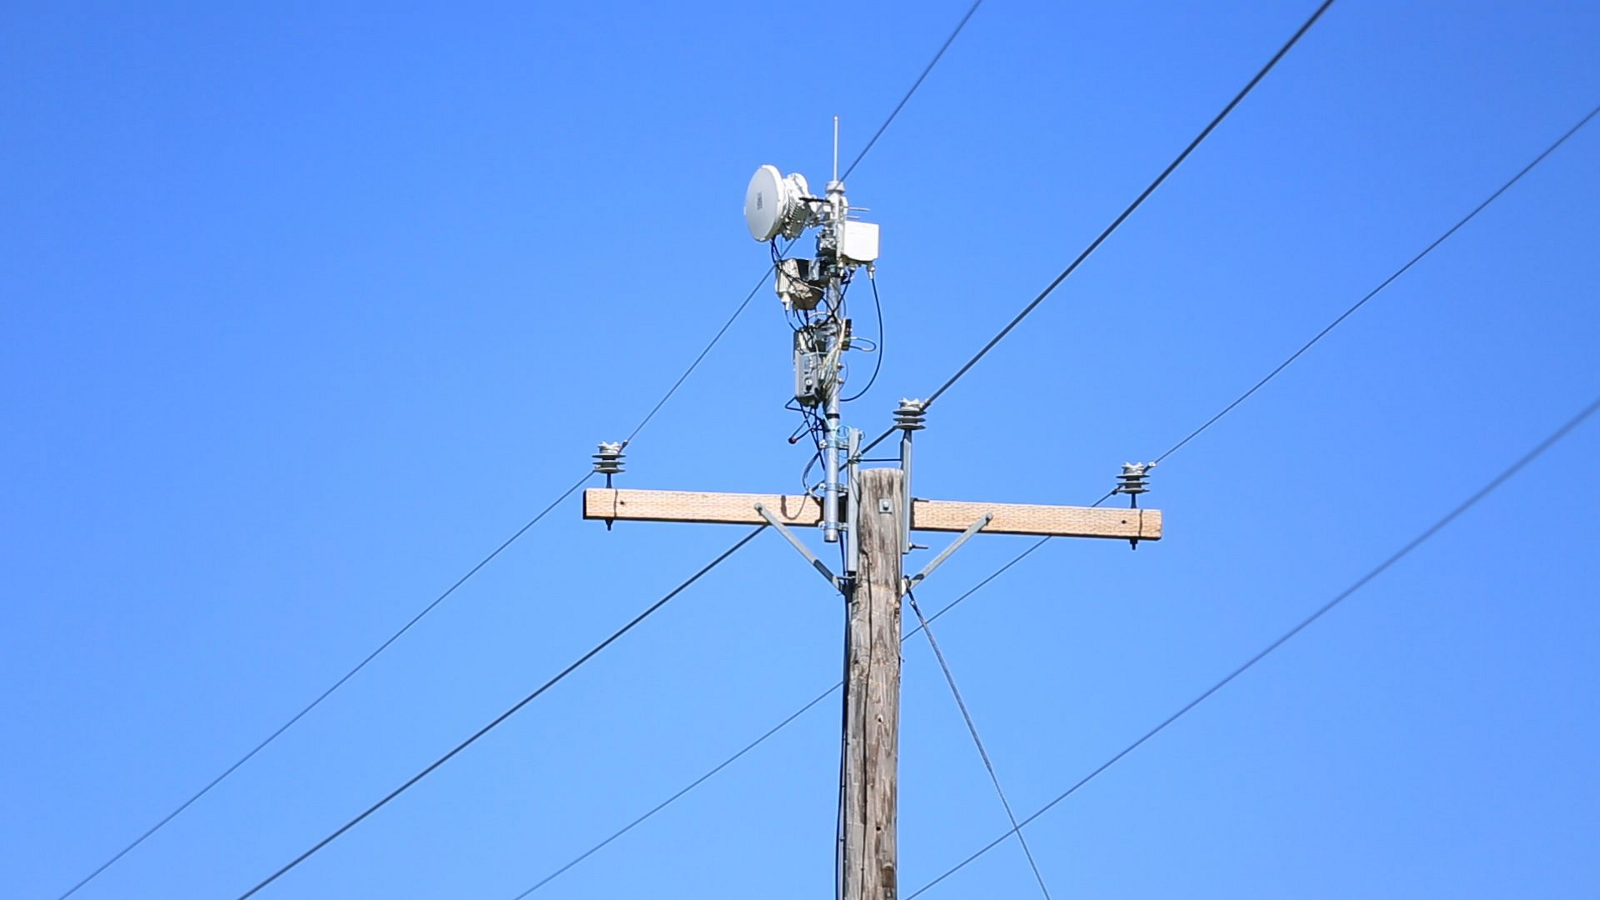 10 Key Issues For California Cities Counties On The Challenges Of Fuse Board Upgrades Sb Electrical Services Atts Project Airgig Would Attach Antennas Onto Power Lines To Send Data Signals Around Wires Instead Through Them From Cnetcom